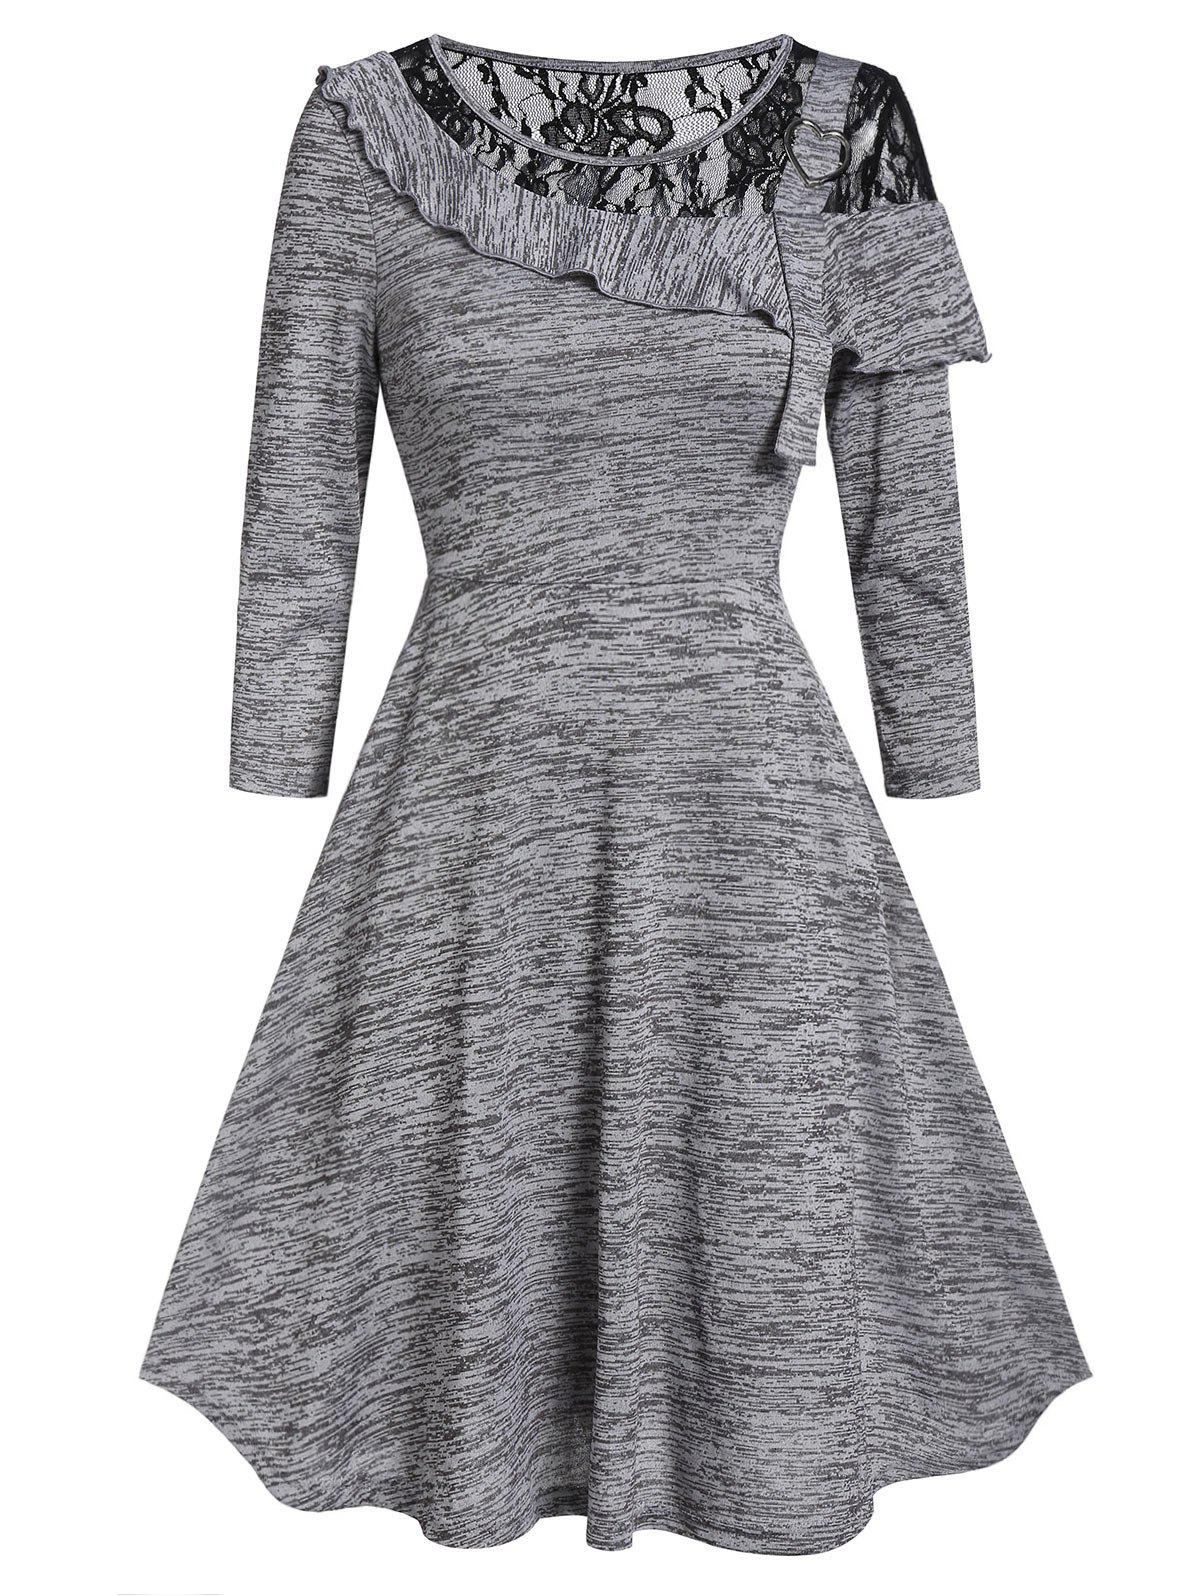 Marled Lace Insert Round Collar Fit And Flare Dress - GRAY L